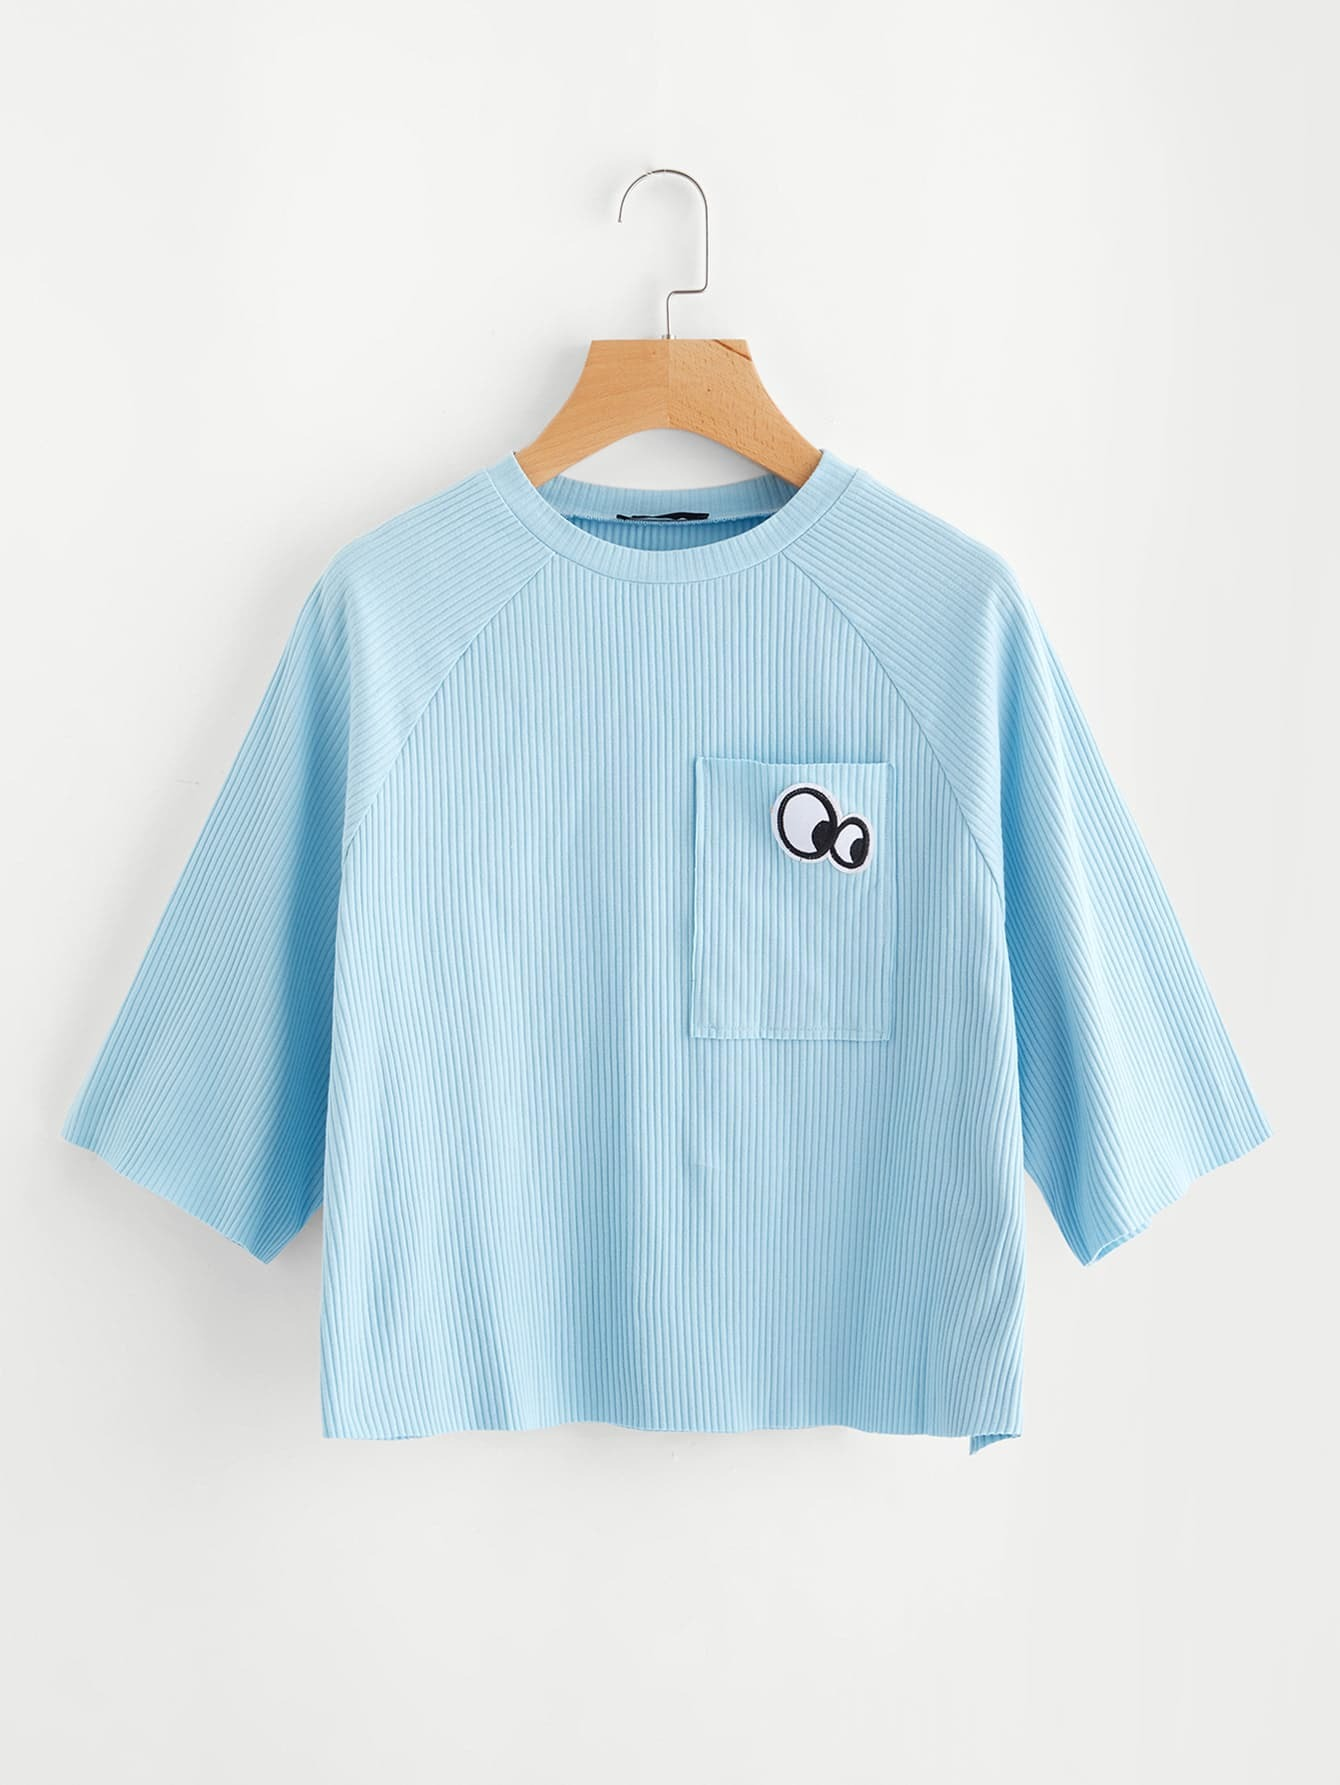 Raglan Sleeve Eye Patch Pocket Ribbed Tee